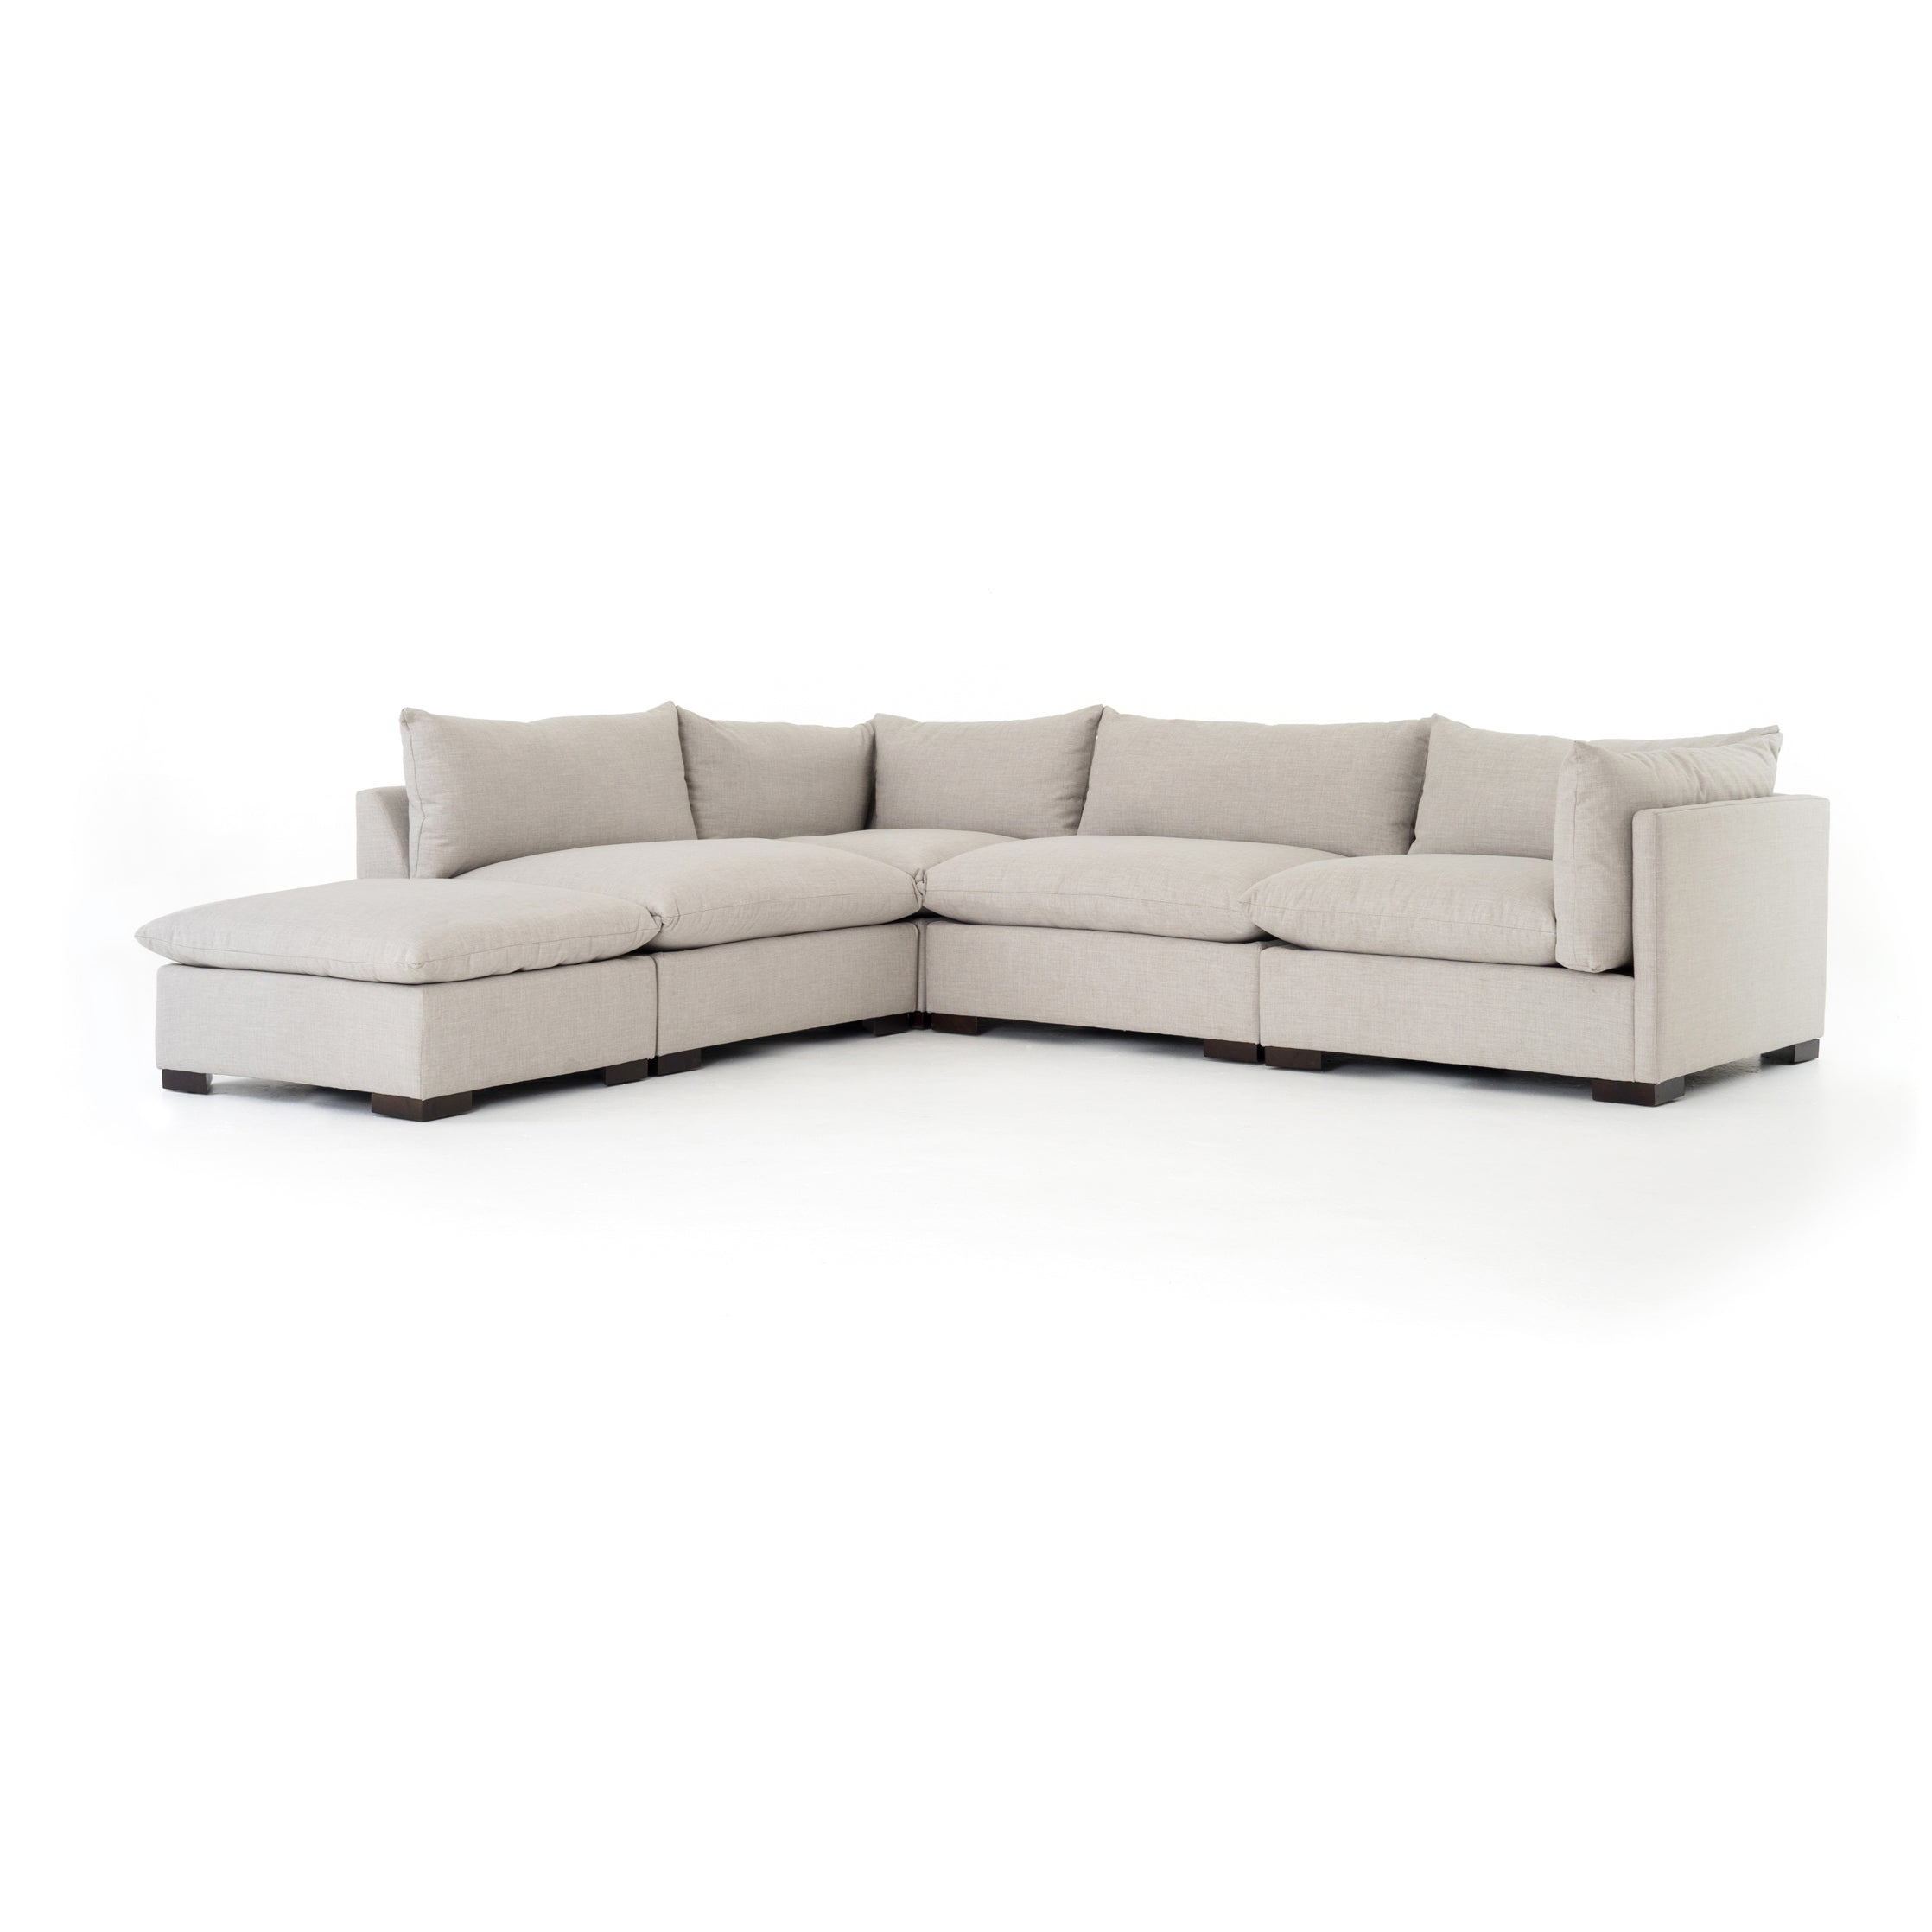 Westwood 4-Pc Sectional W/ Ottoman-Bm